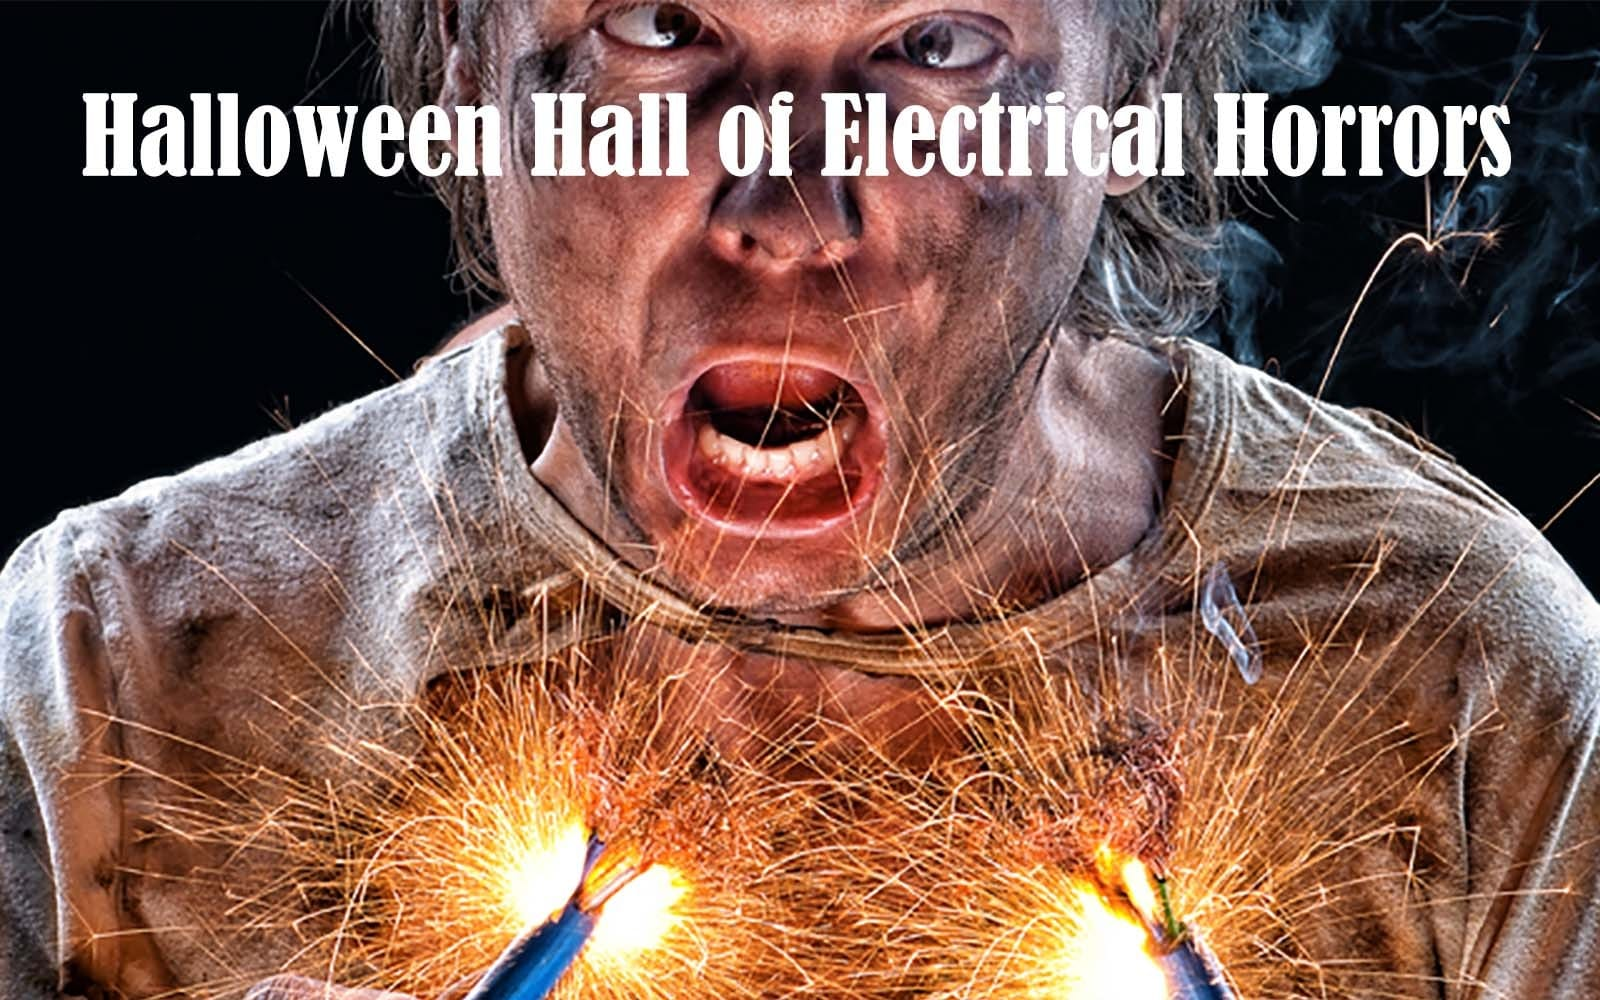 Halloween Hall of Electrical Horrors